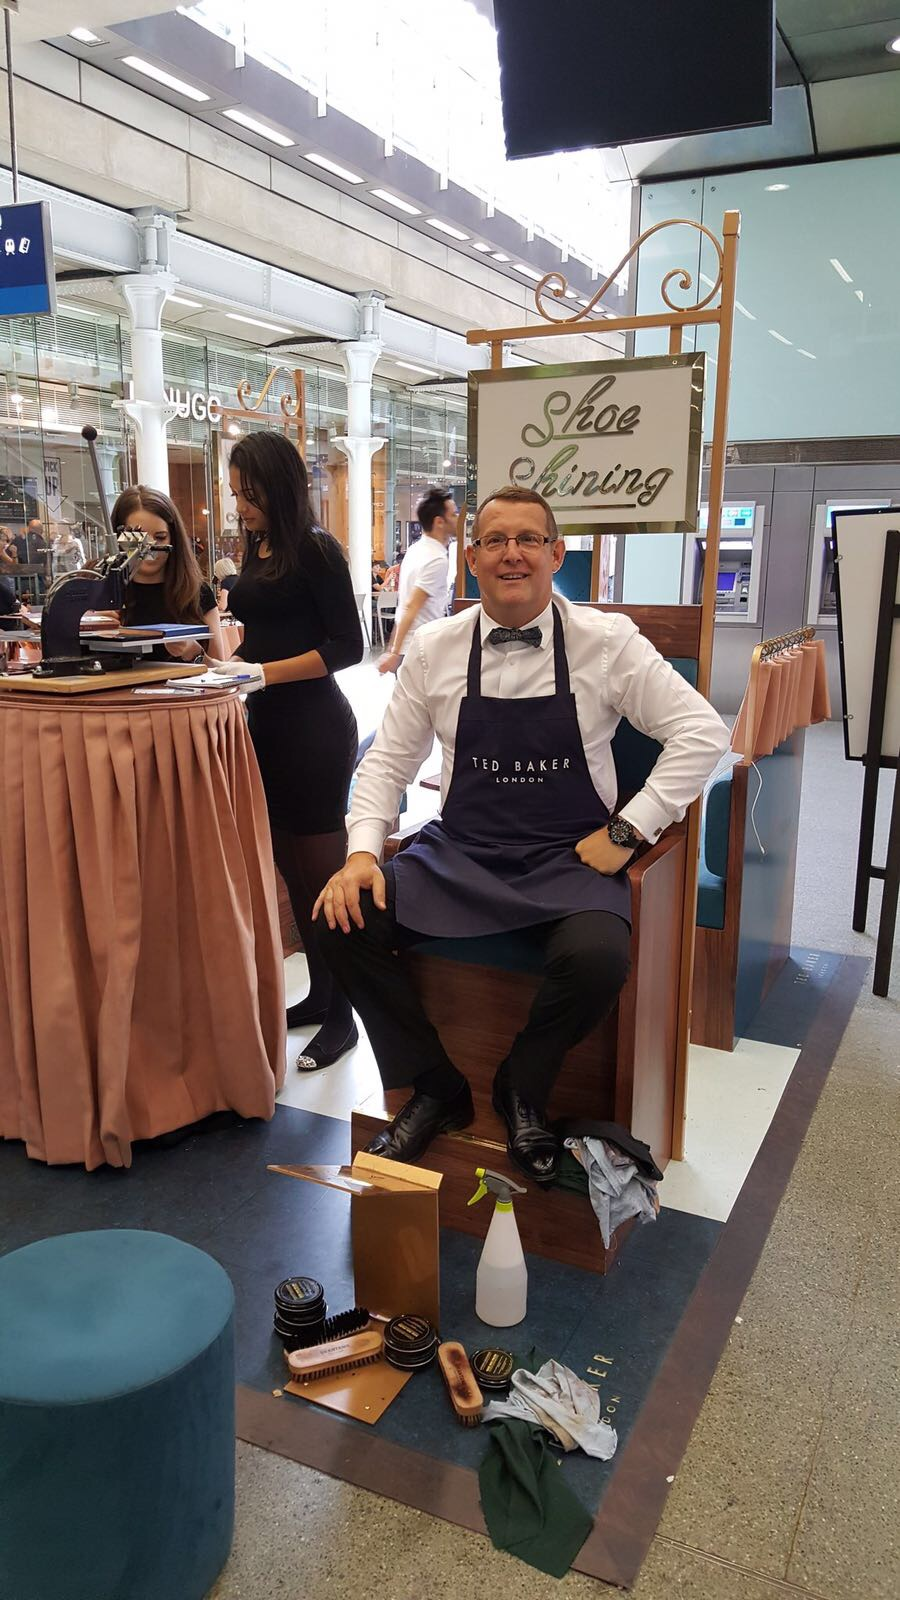 Privilege to partner again with Ted Baker For Another Marketing Event